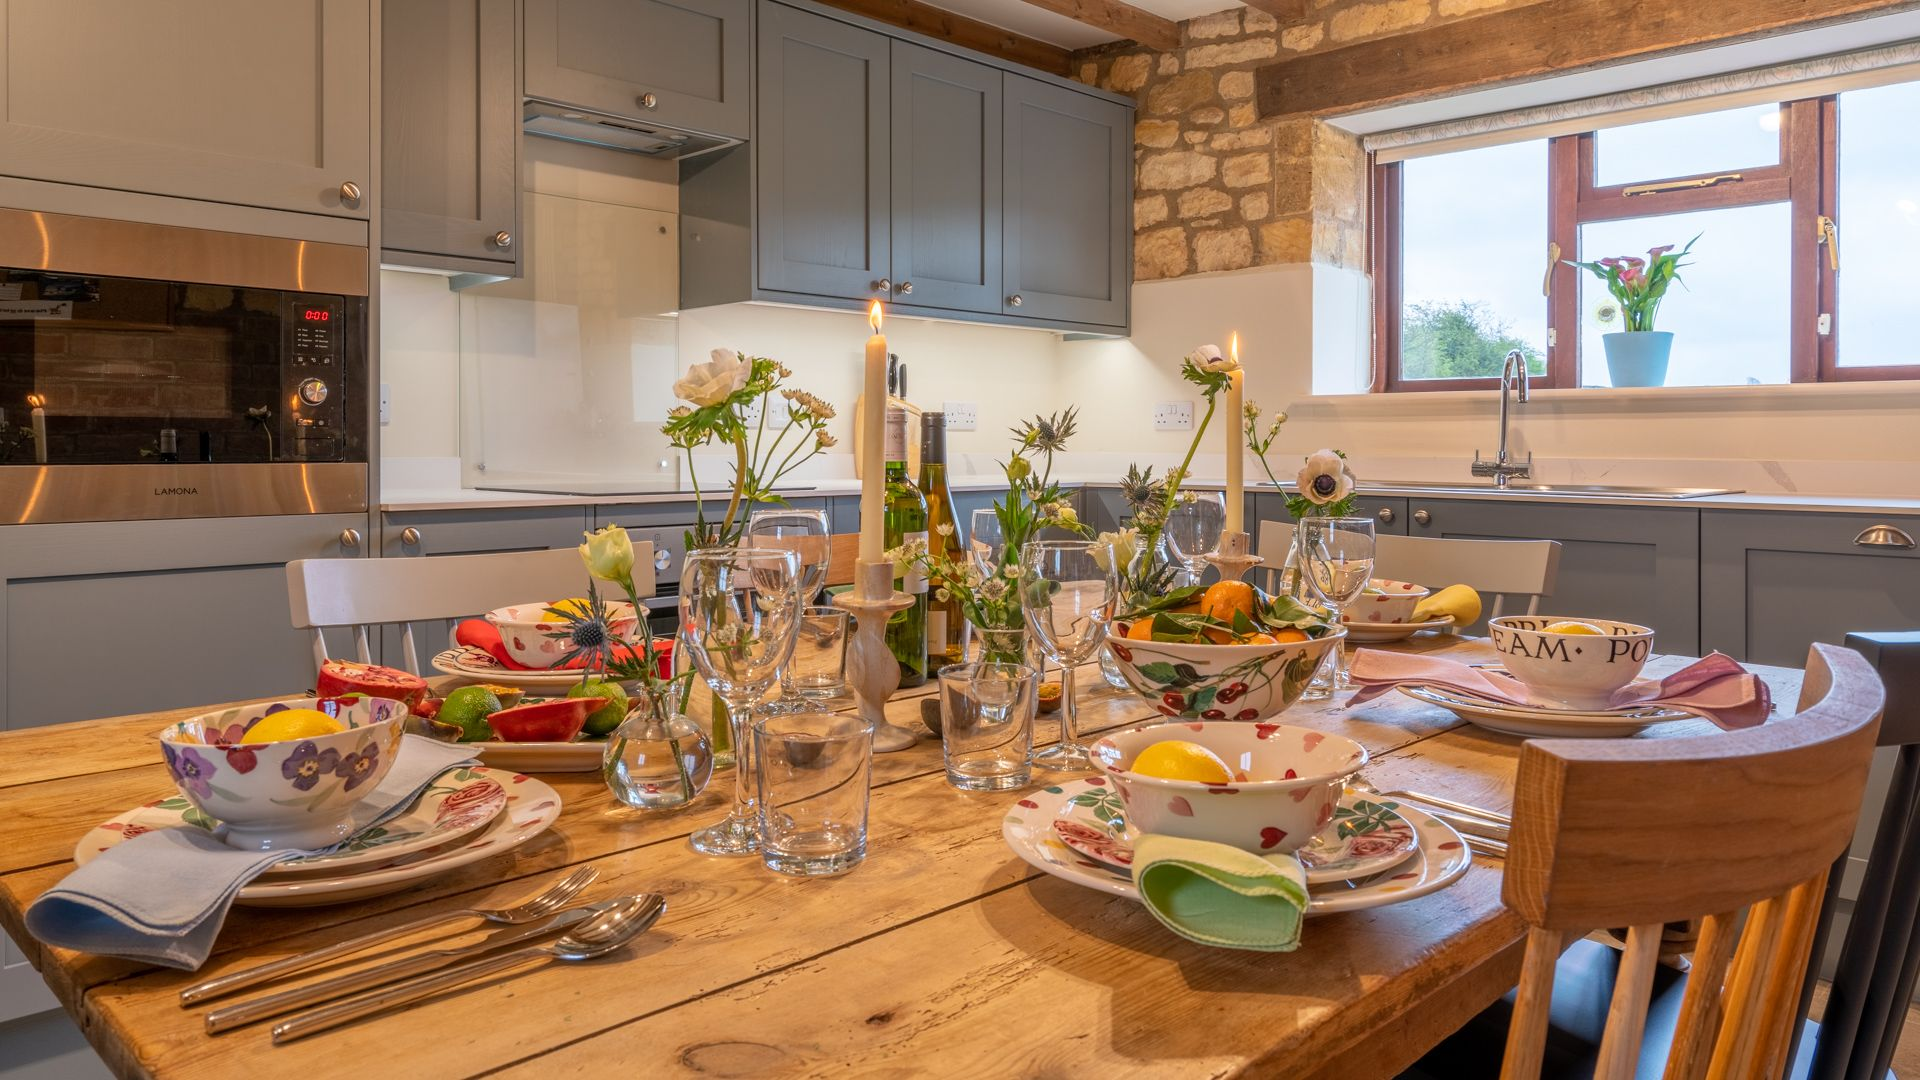 Kitchen-Dining Room, Field House Cottage, Bolthole Retreats